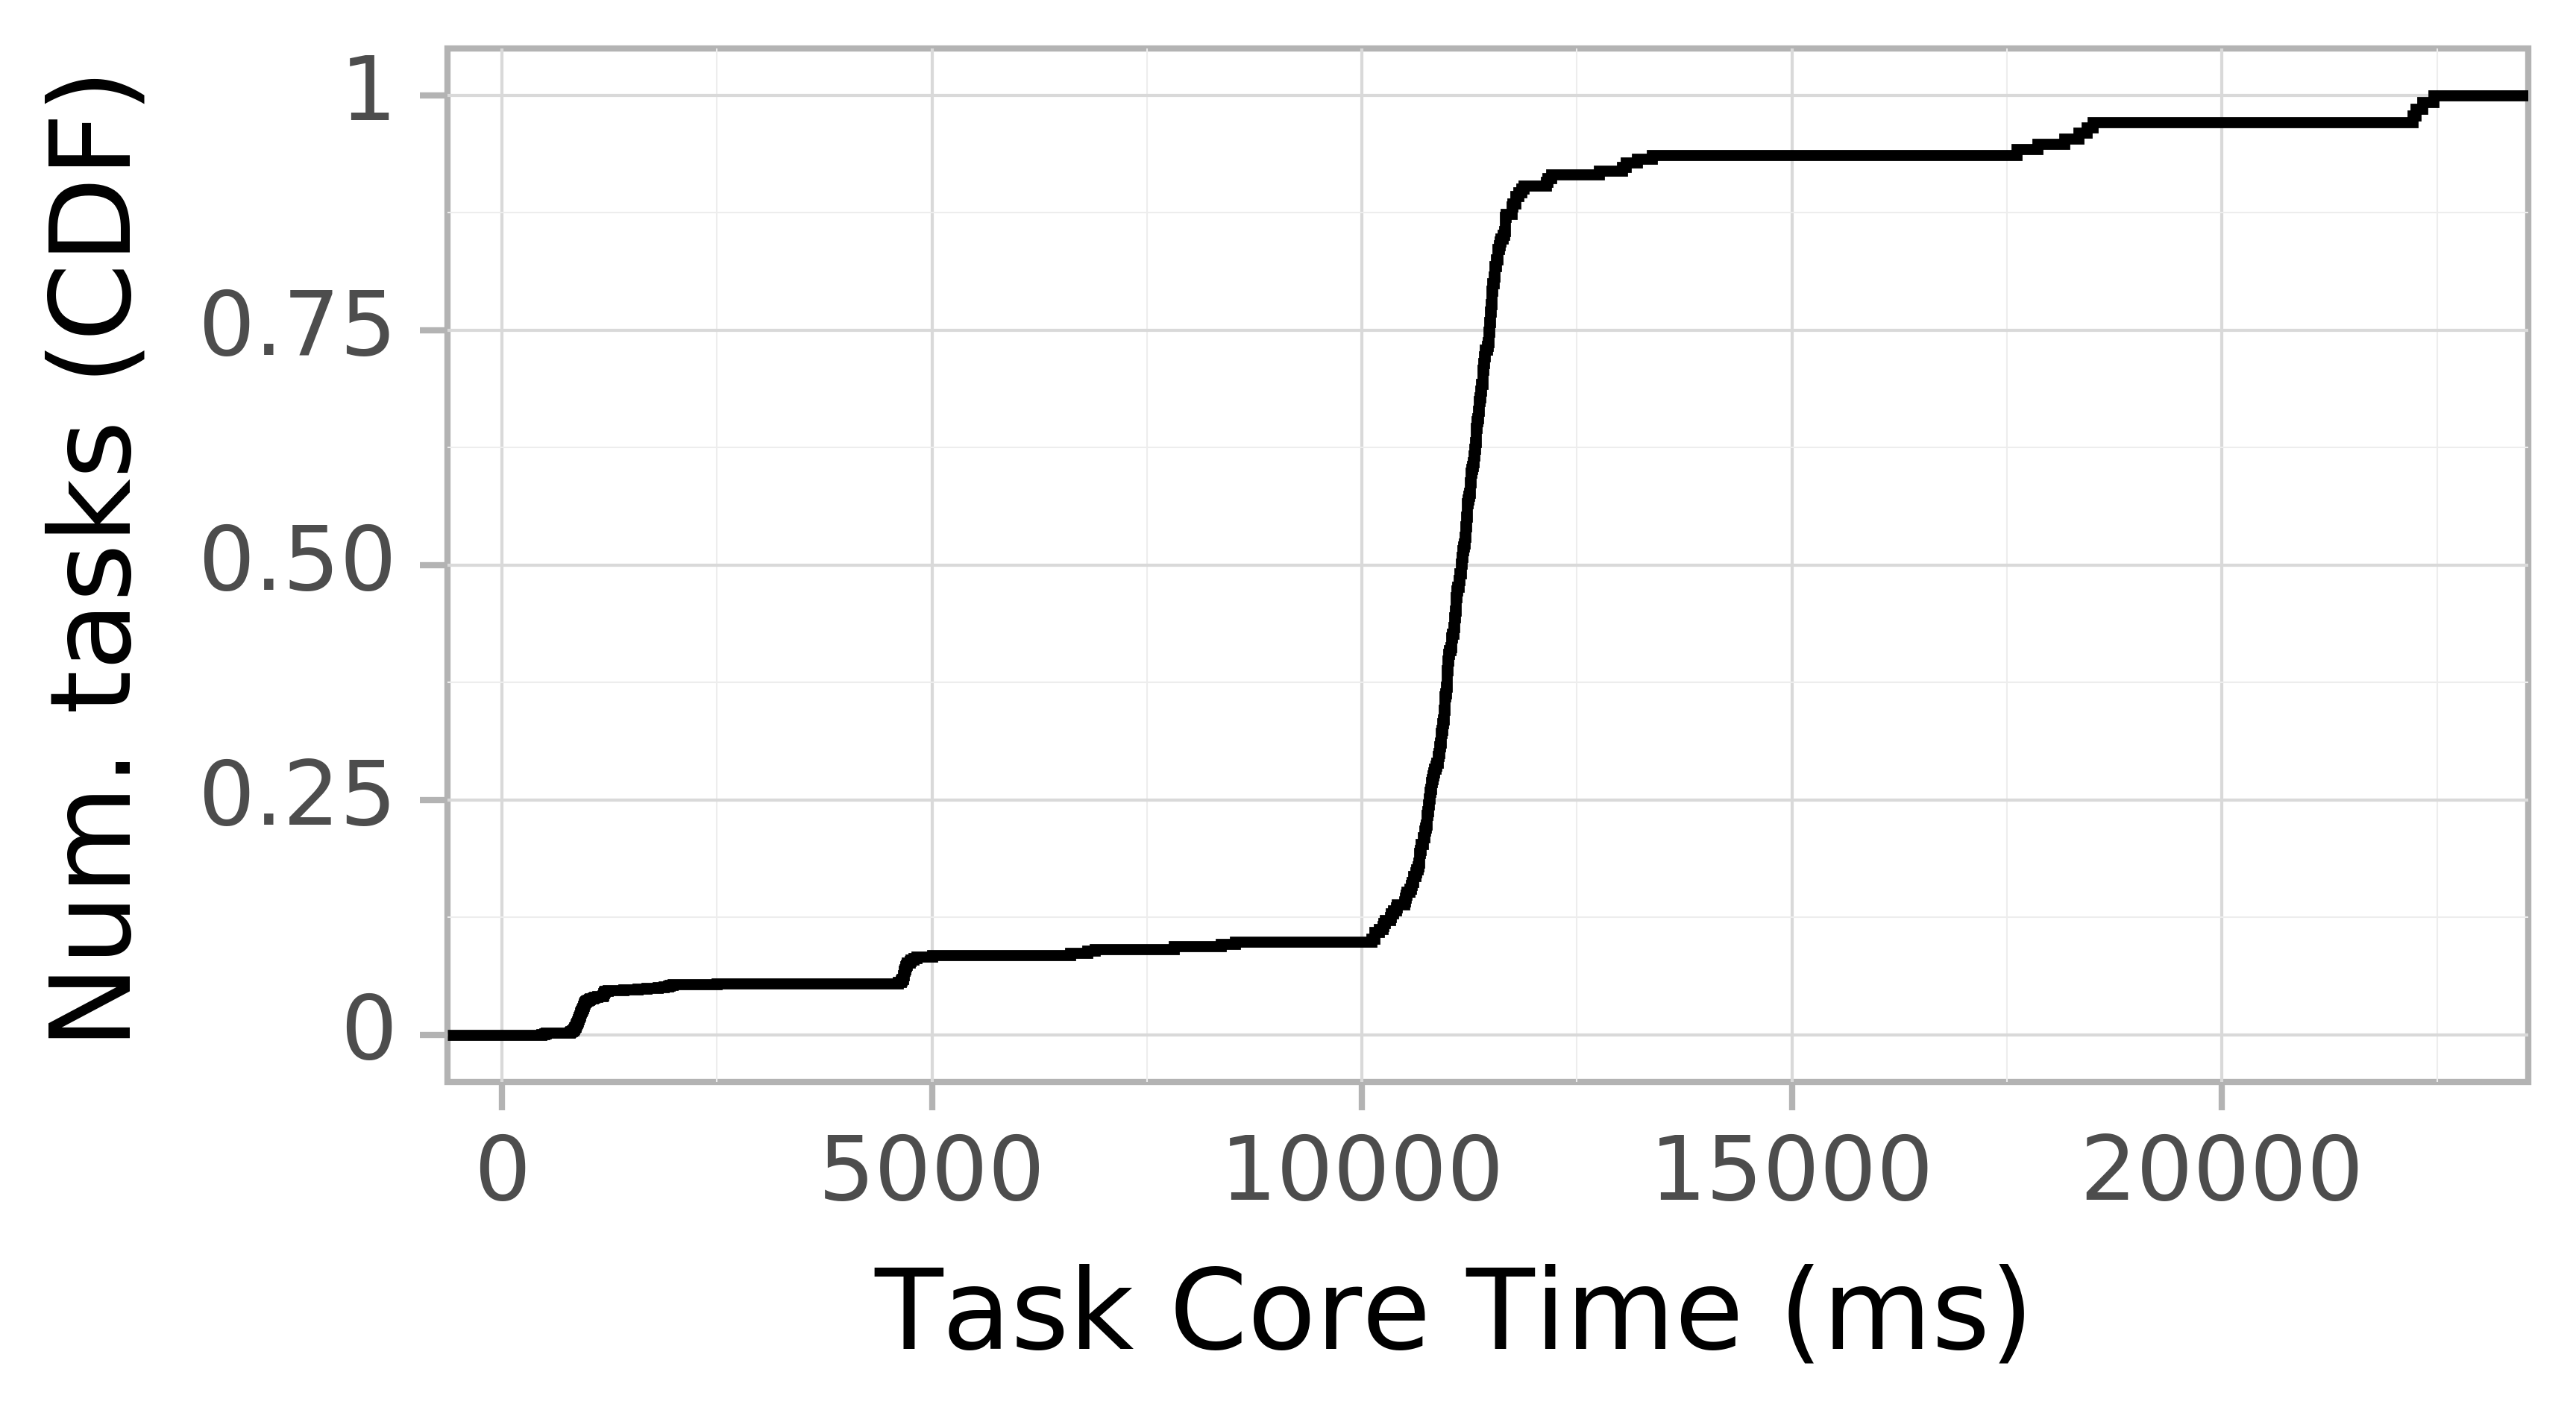 task resource time CDF graph for the askalon-new_ee44 trace.